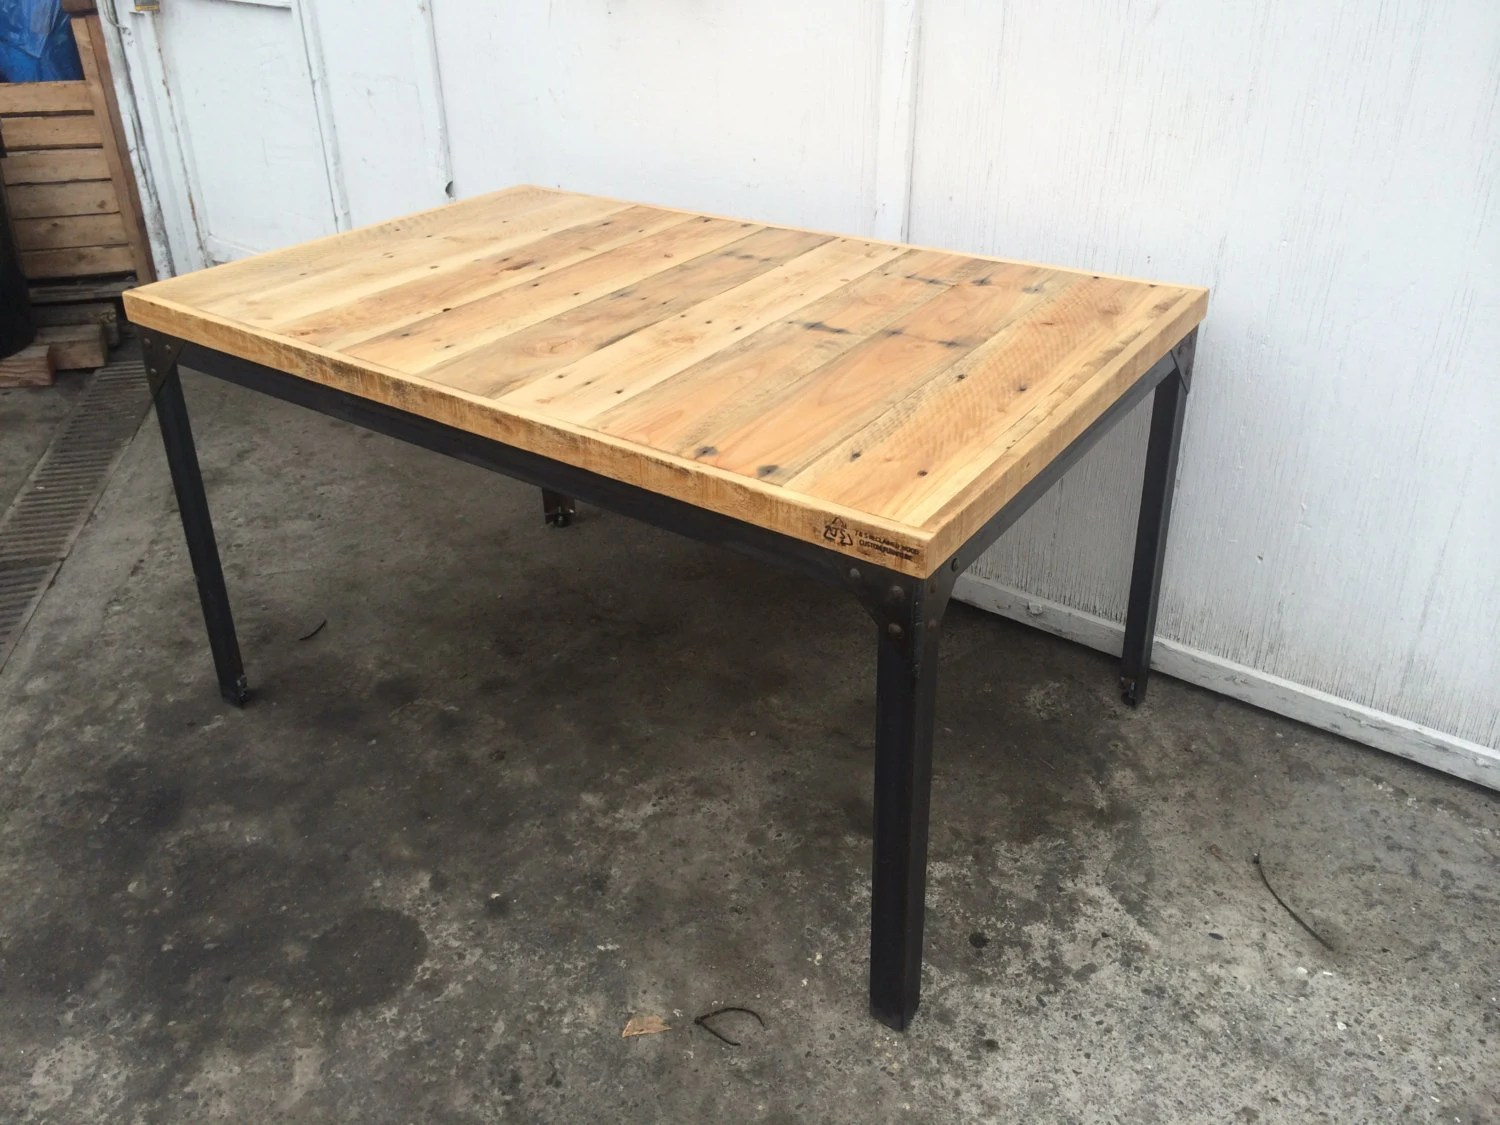 Pine Pallet-wood Dining Table With Hand Welded Steel Base With